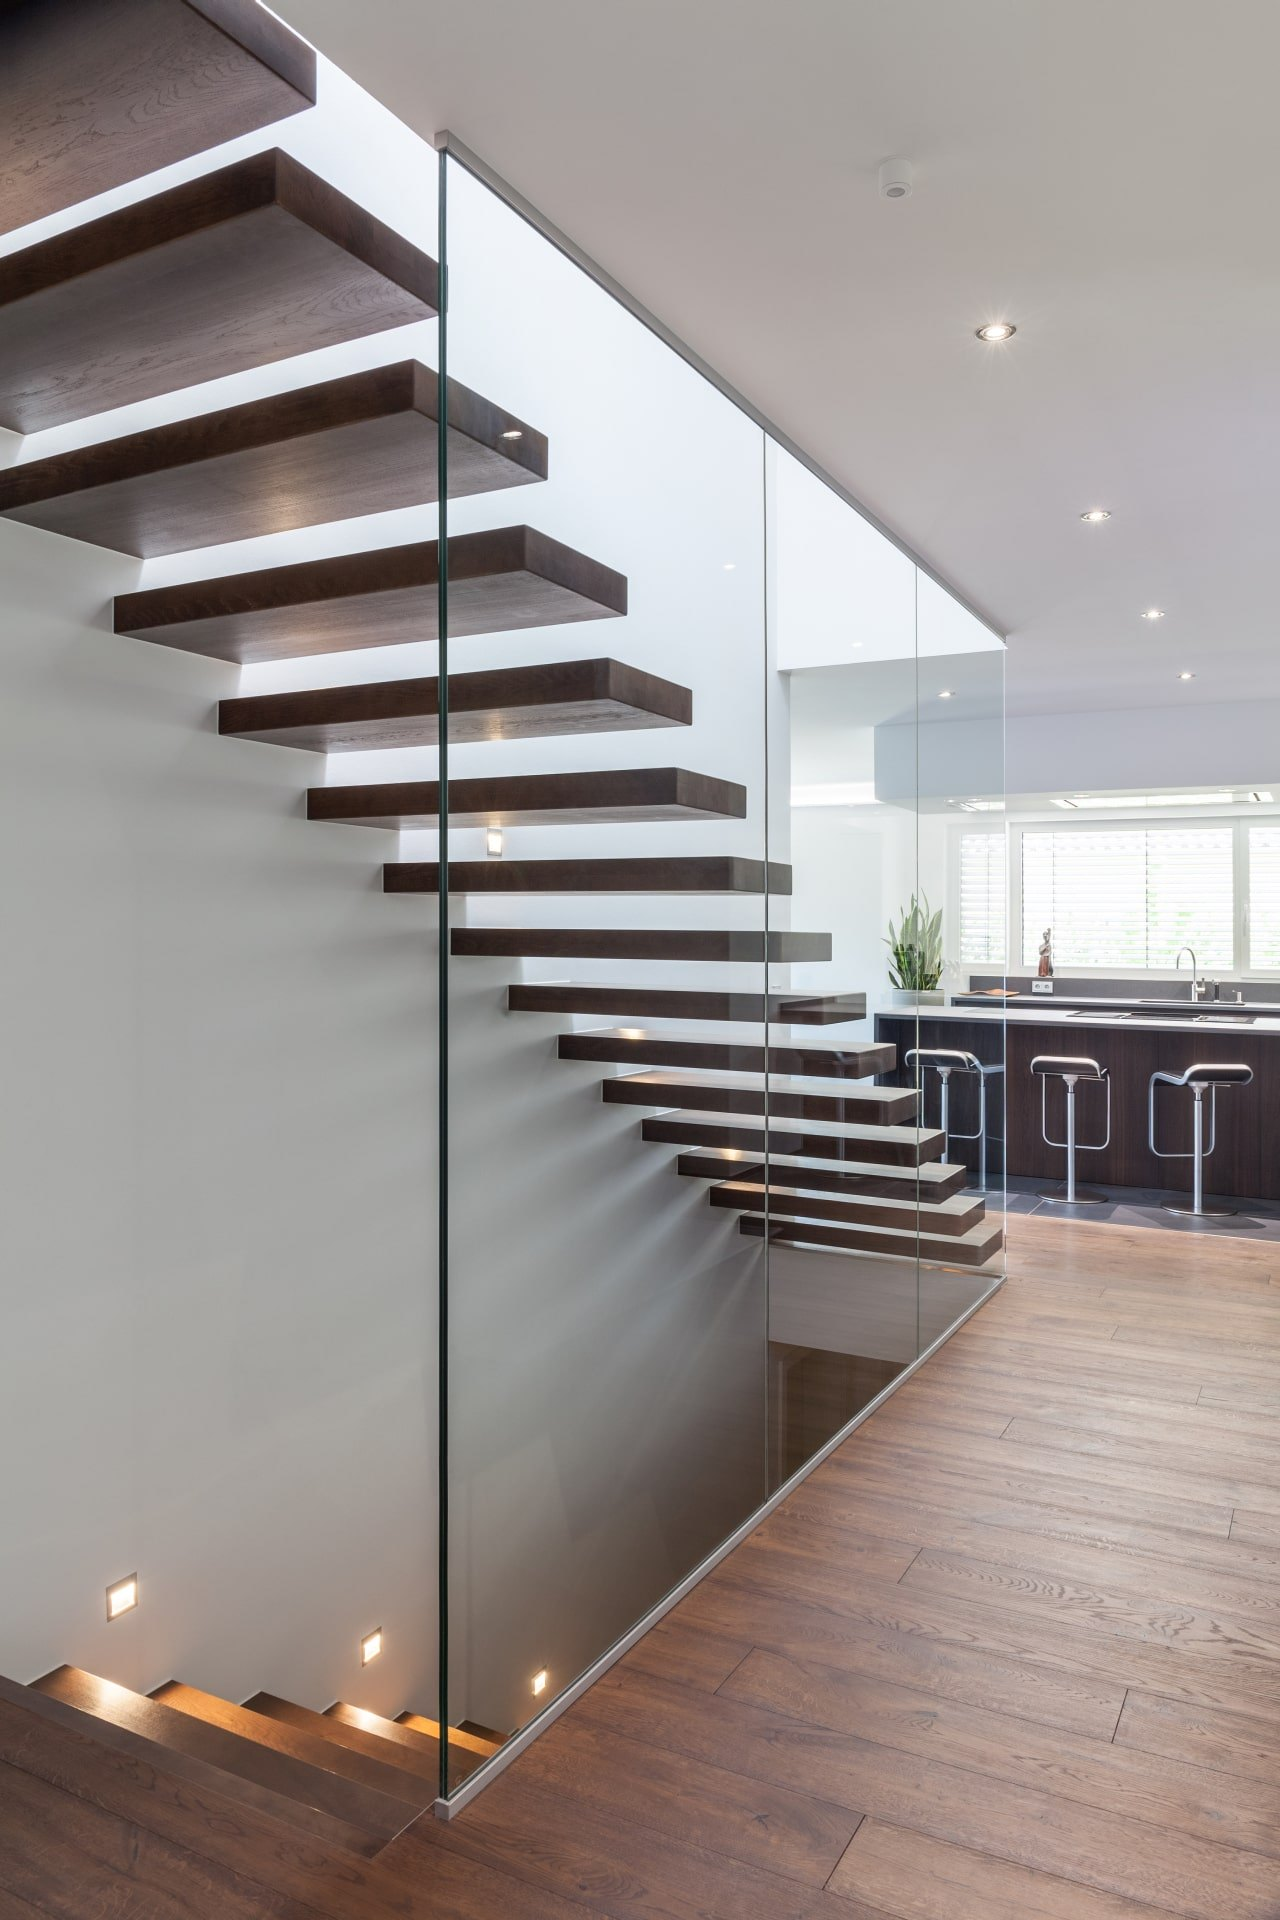 High-quality stairs made to measure - Cantilver staircases - OST